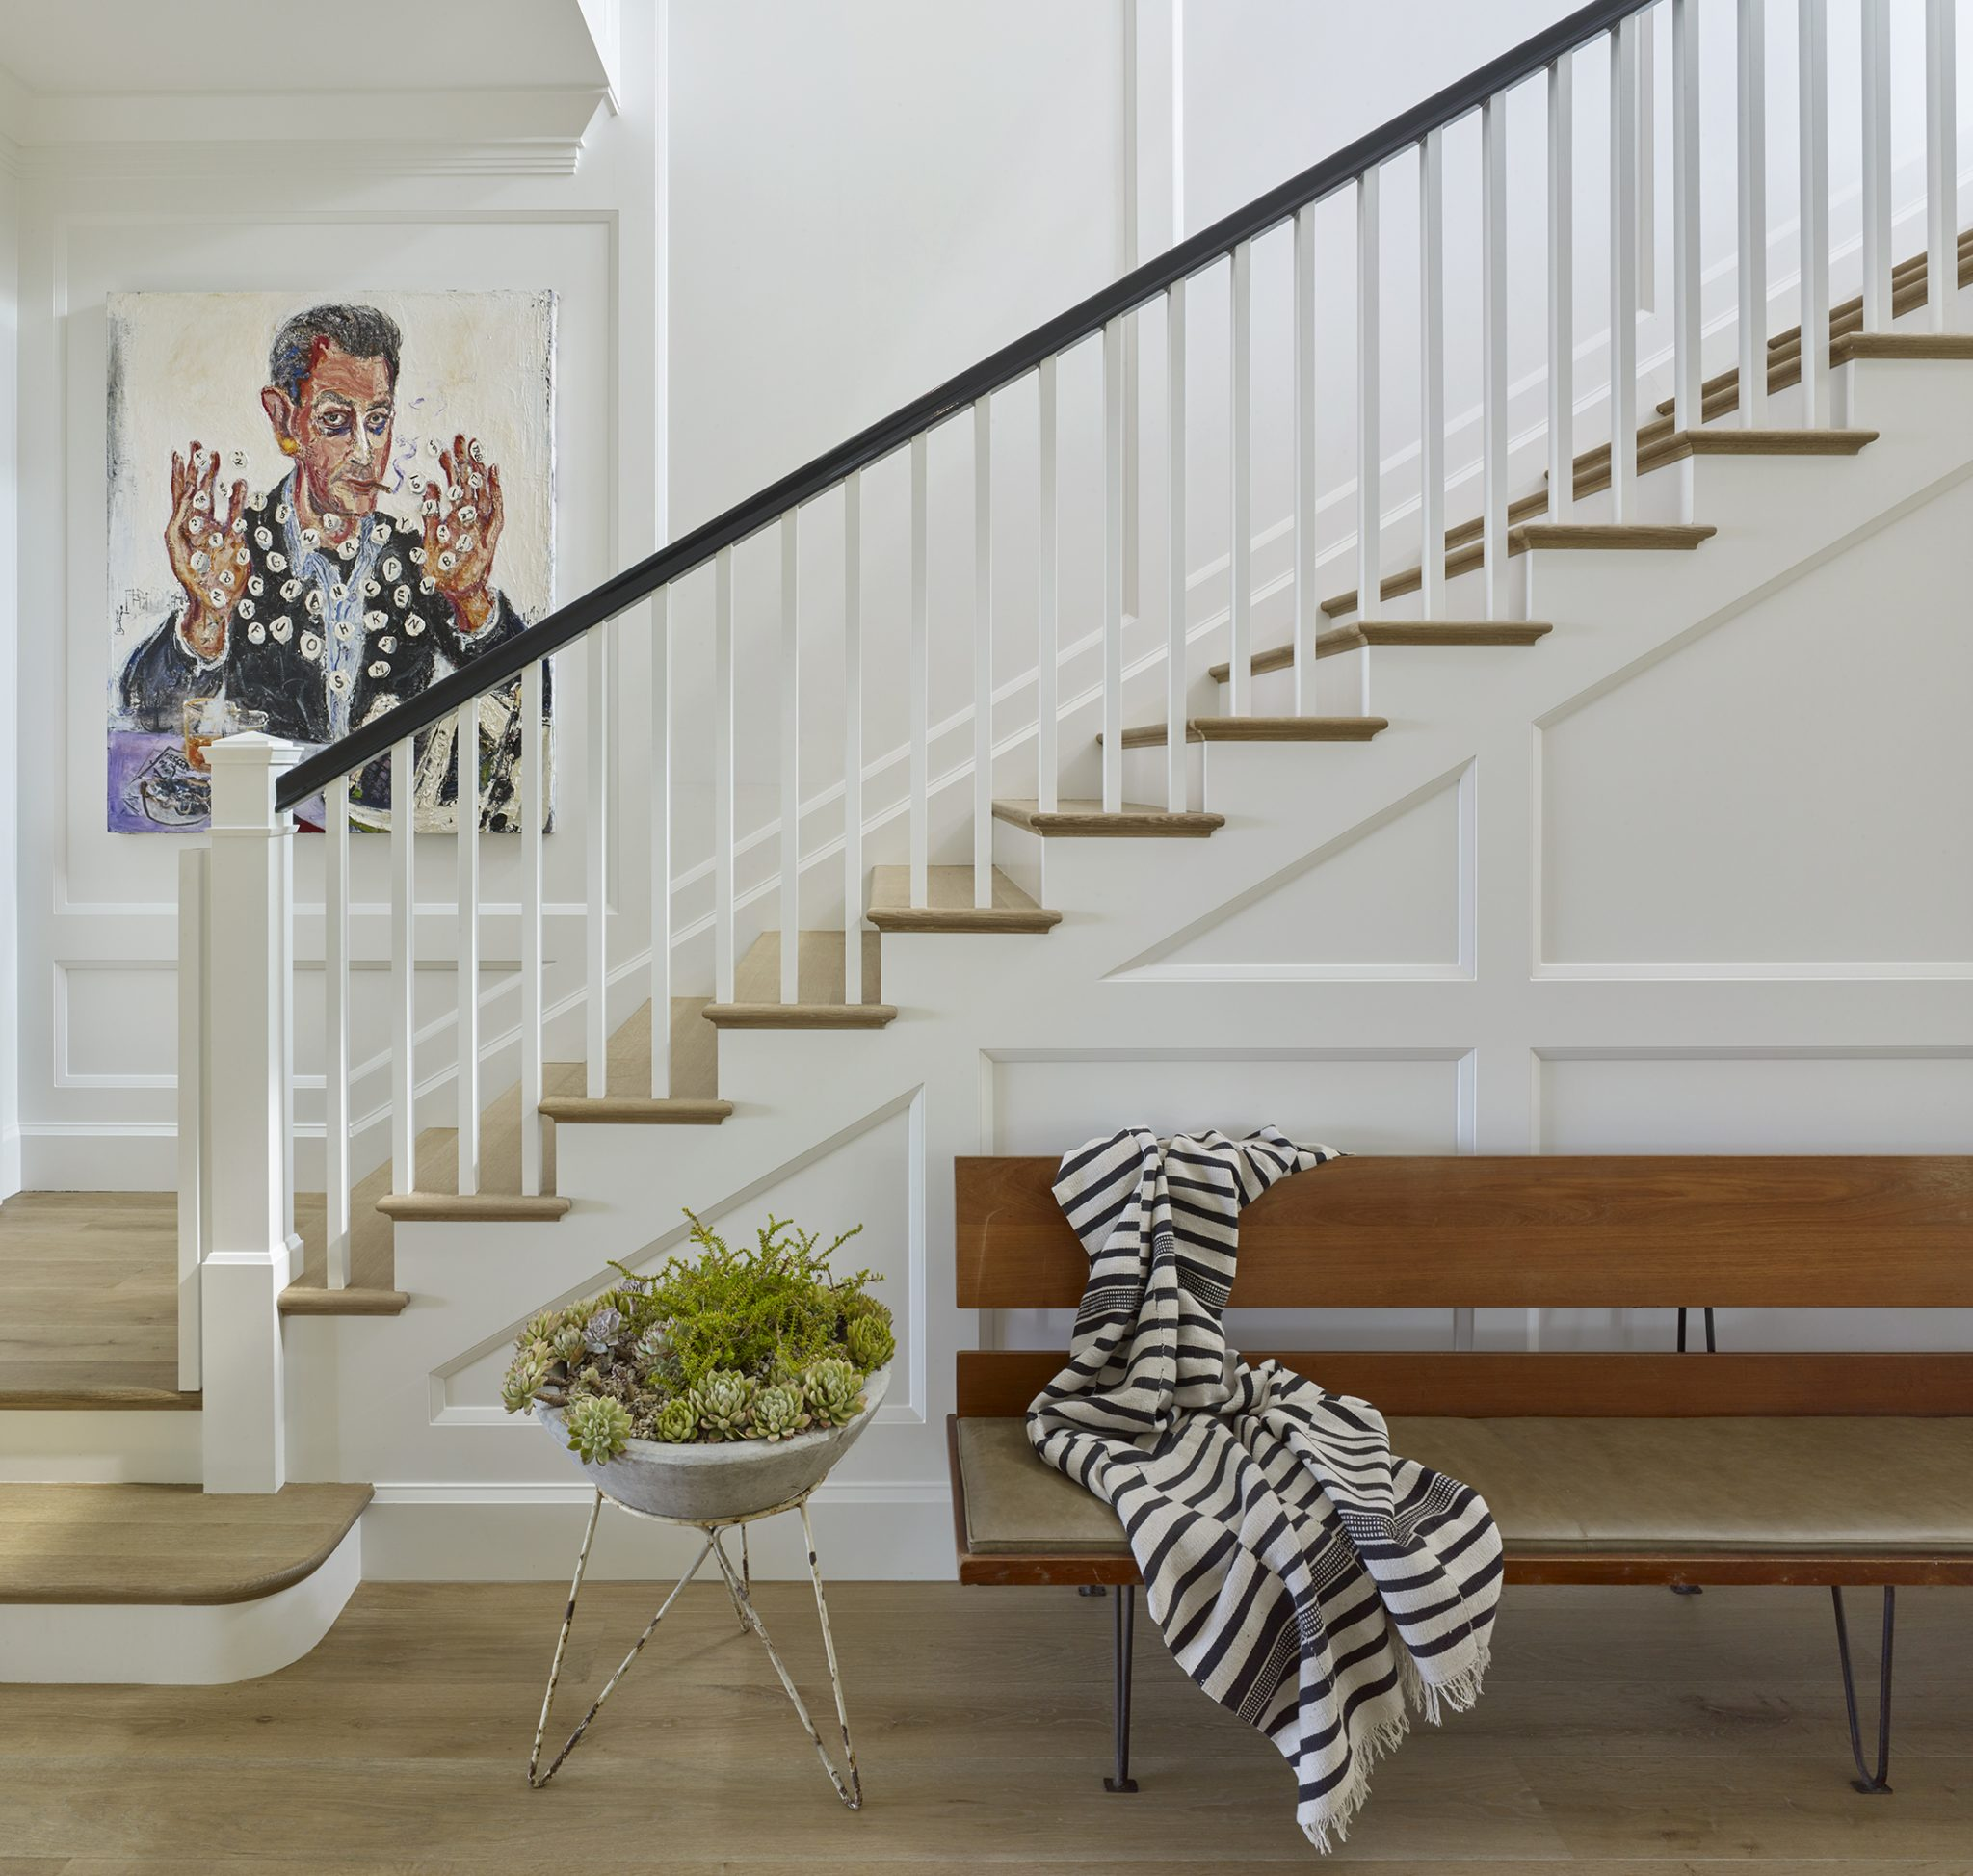 Pacific Palisades staircase and foyer by Dan Scotti Design